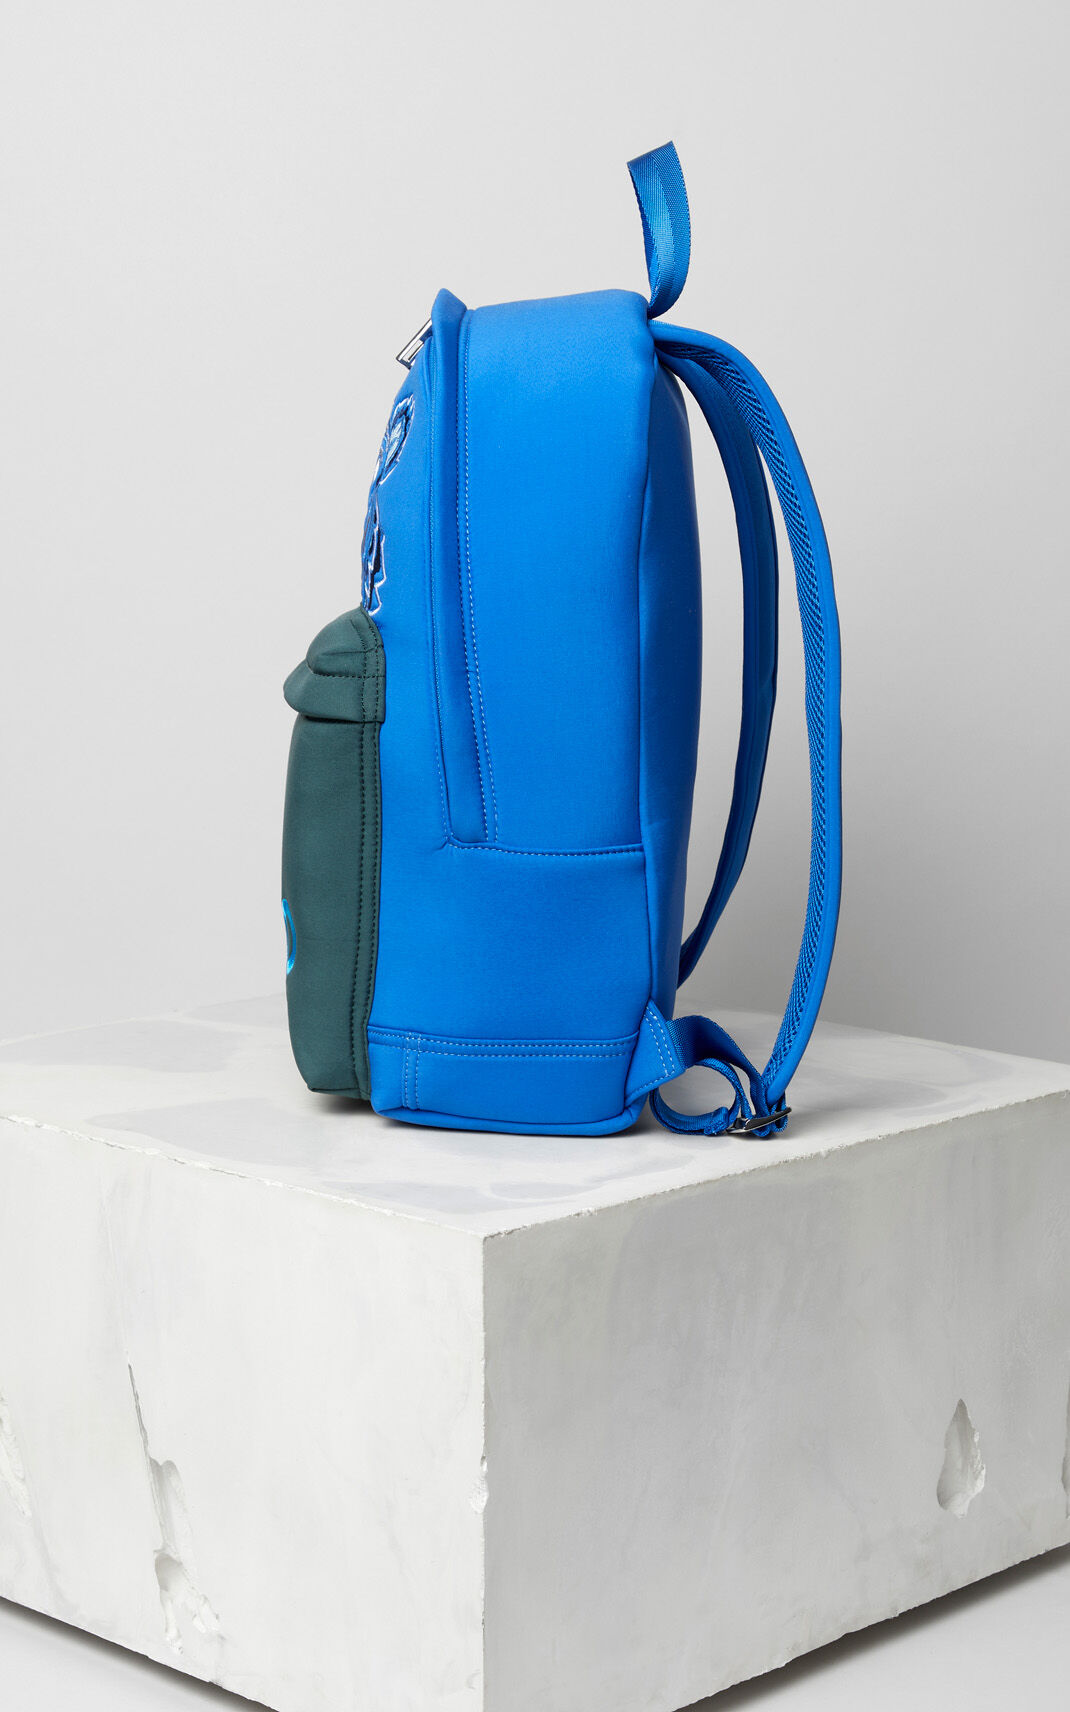 FRENCH BLUE Large neoprene Tiger backpack for women KENZO